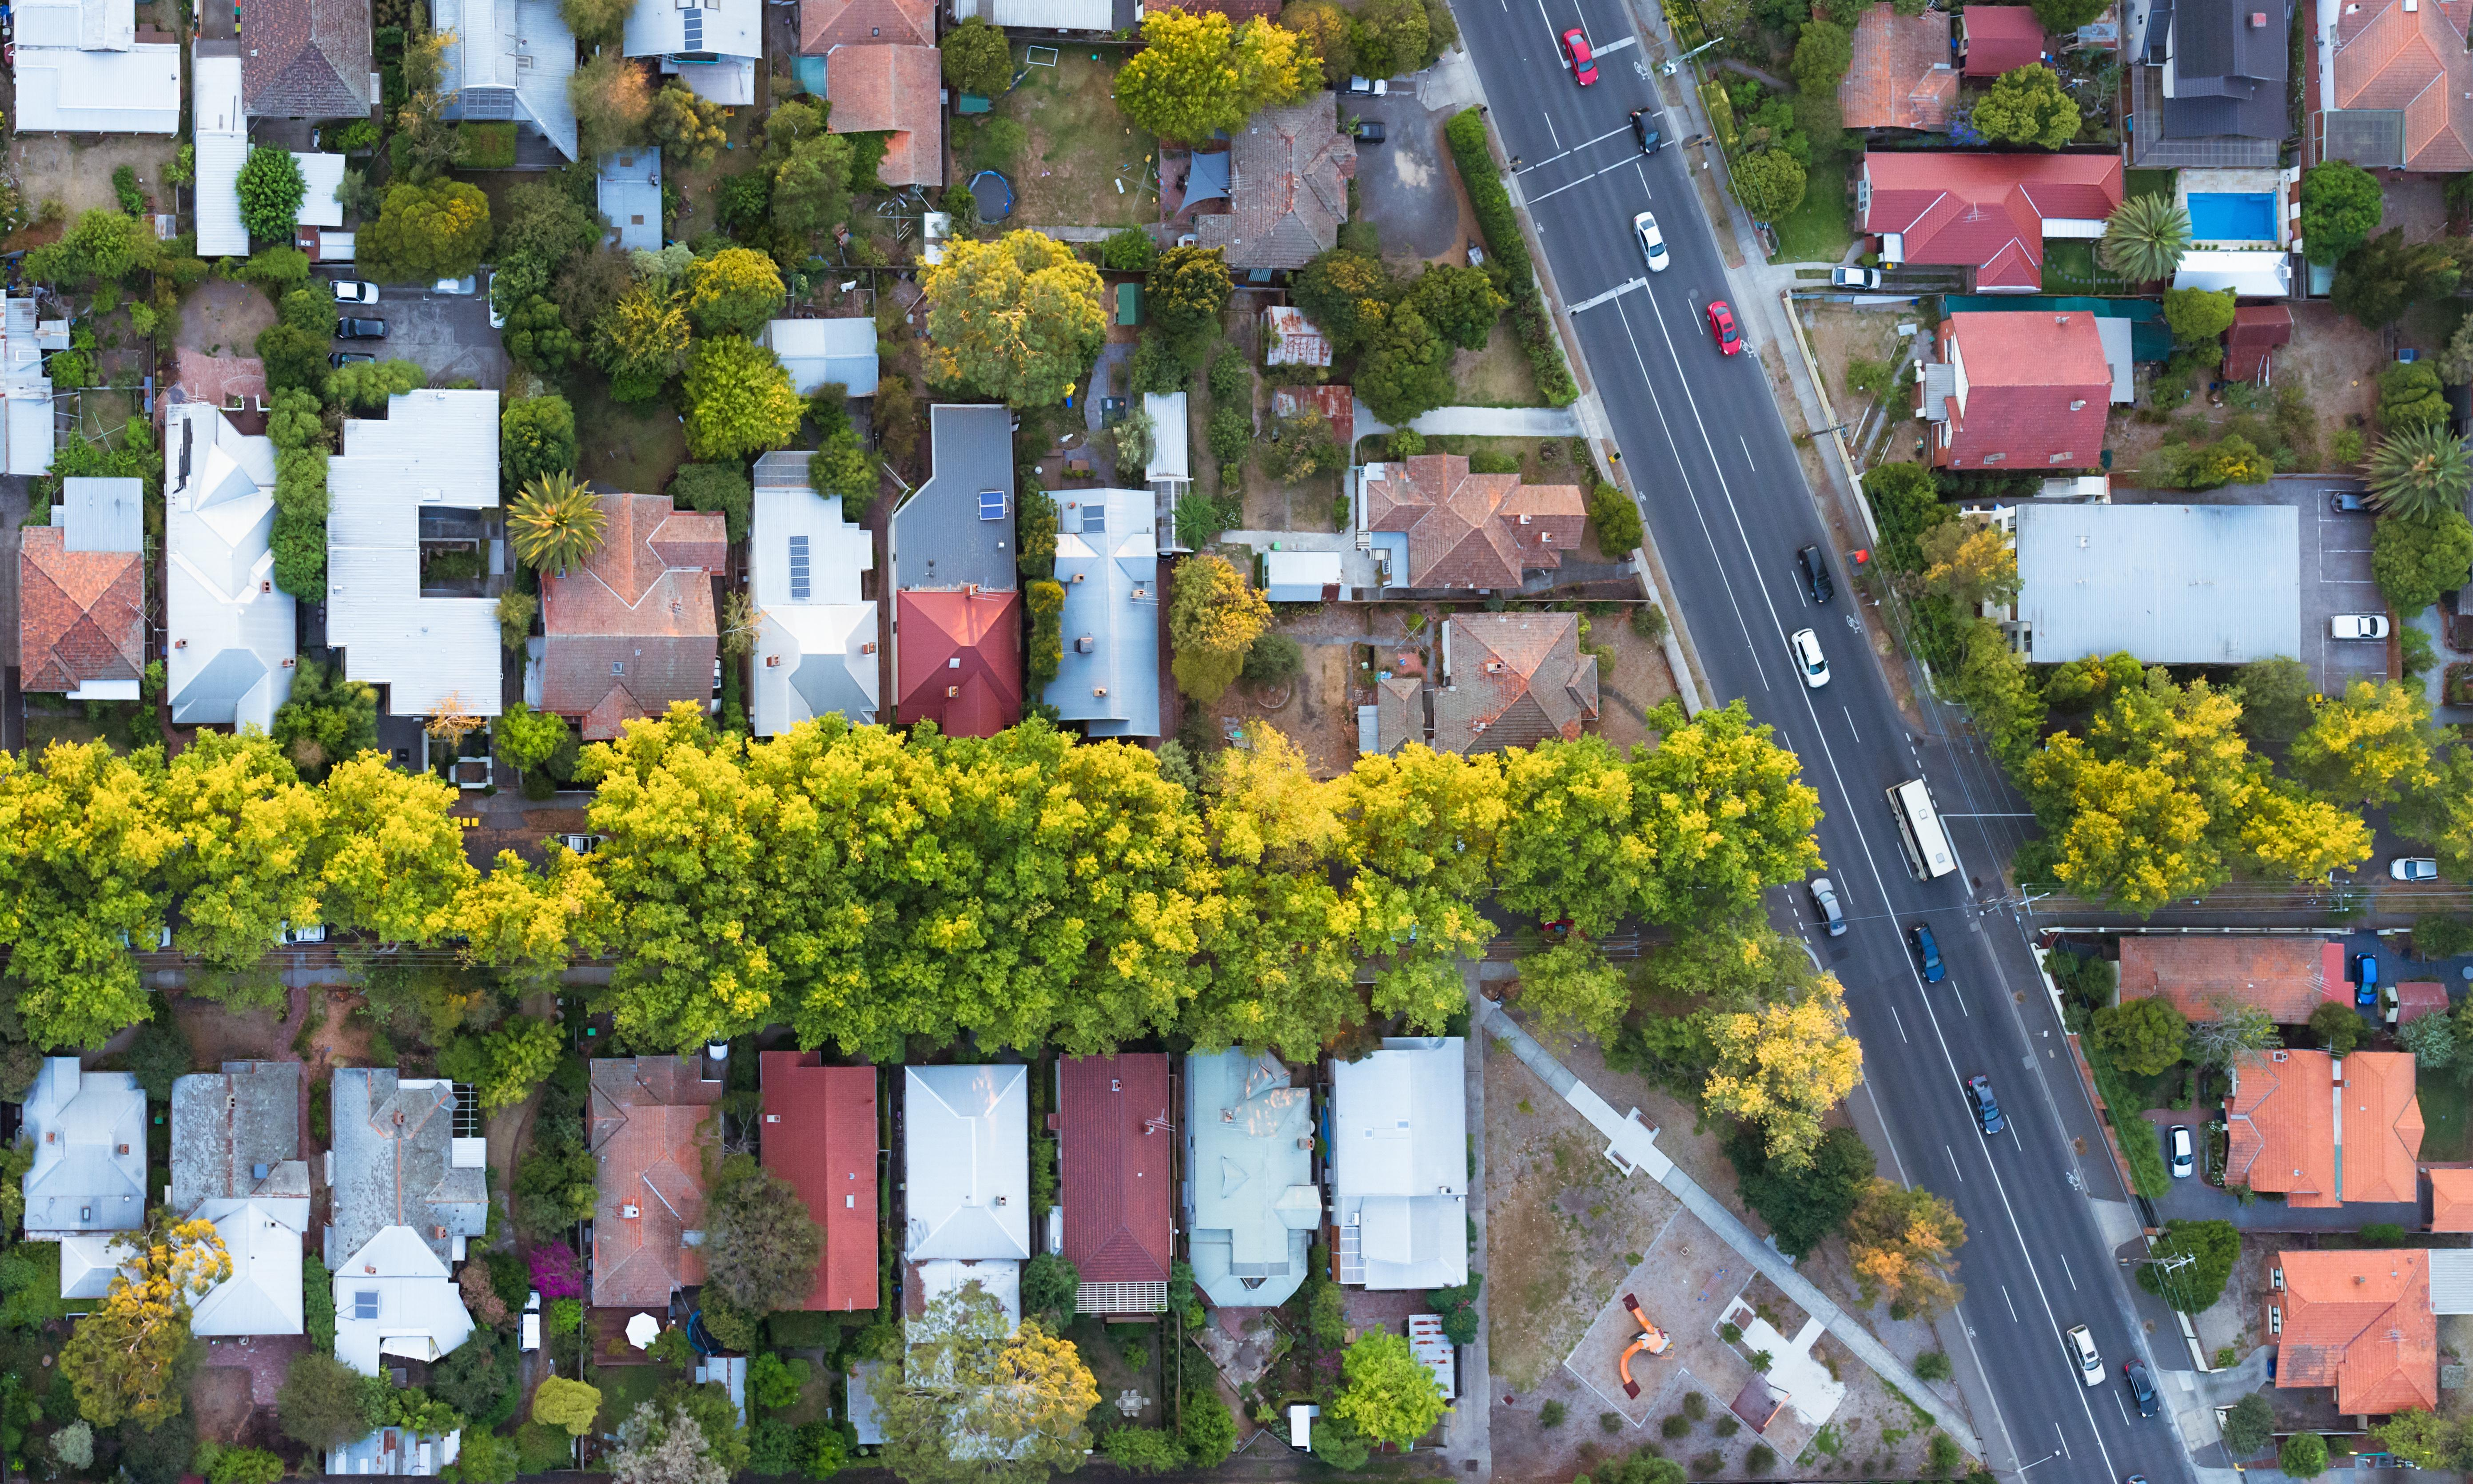 Australians told to expect 'longest and deepest' housing slump